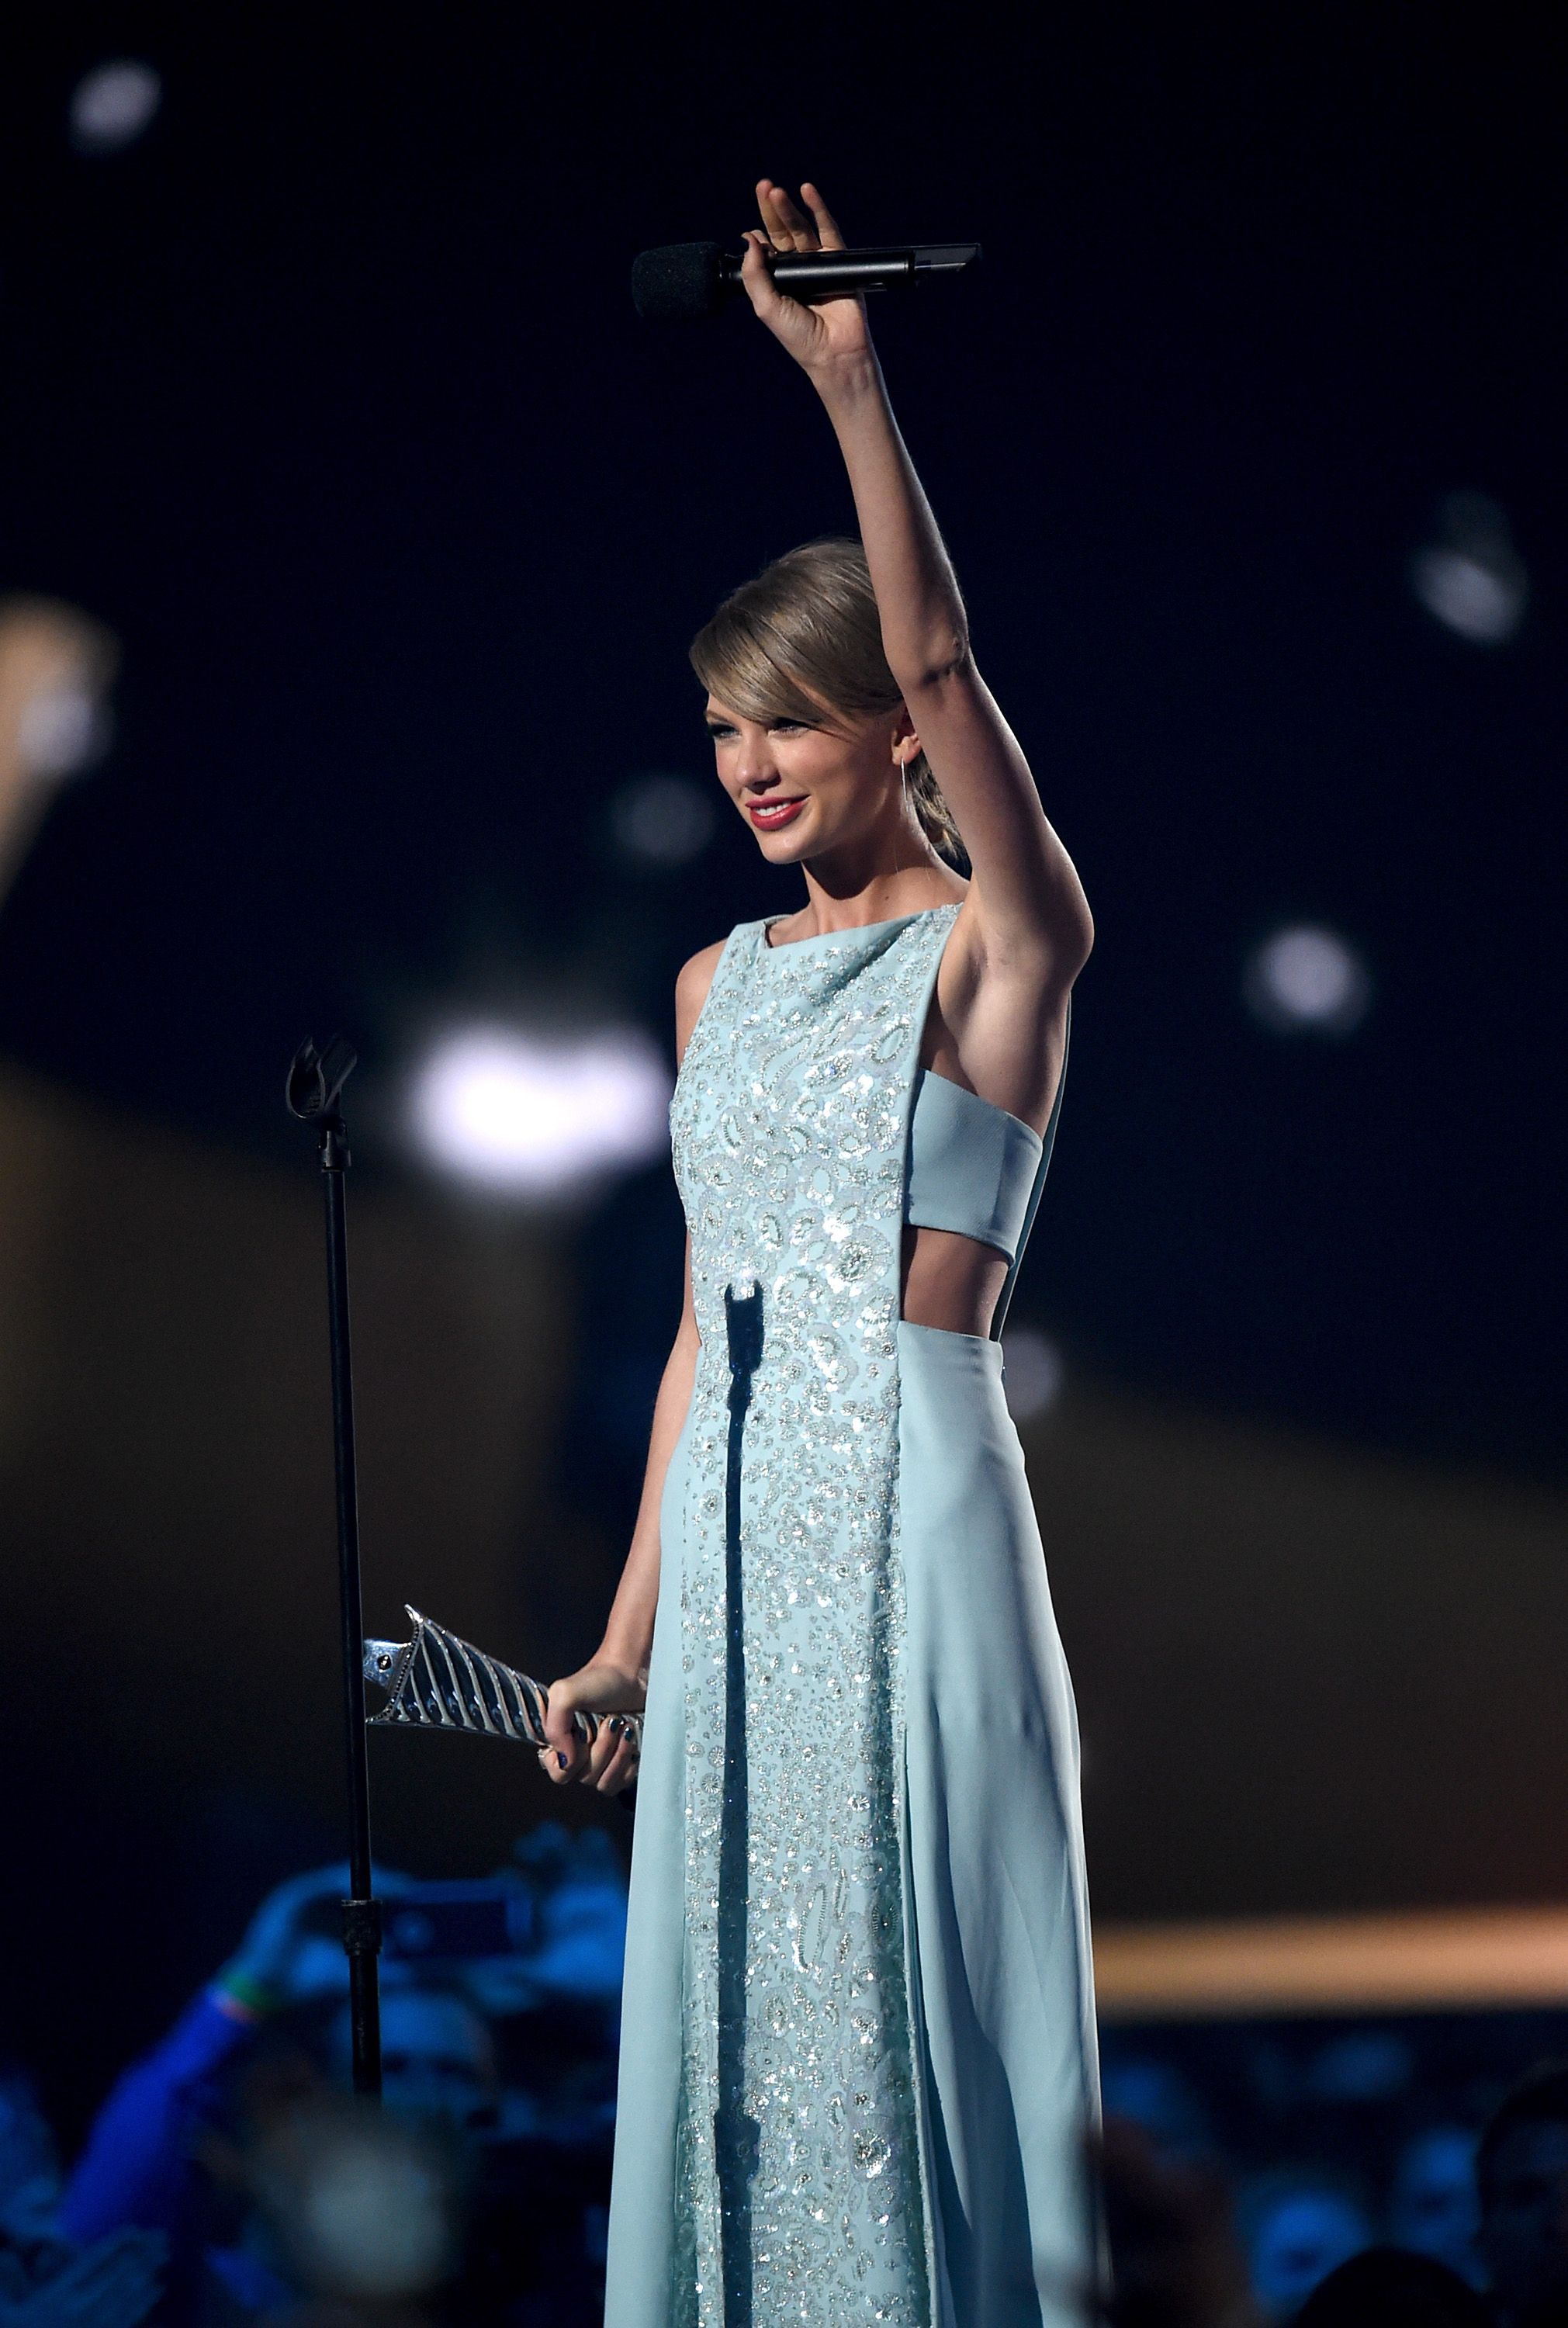 Taylor Swift S Stunning Acm S Gown Is The Definition Of Prom Dress Goals